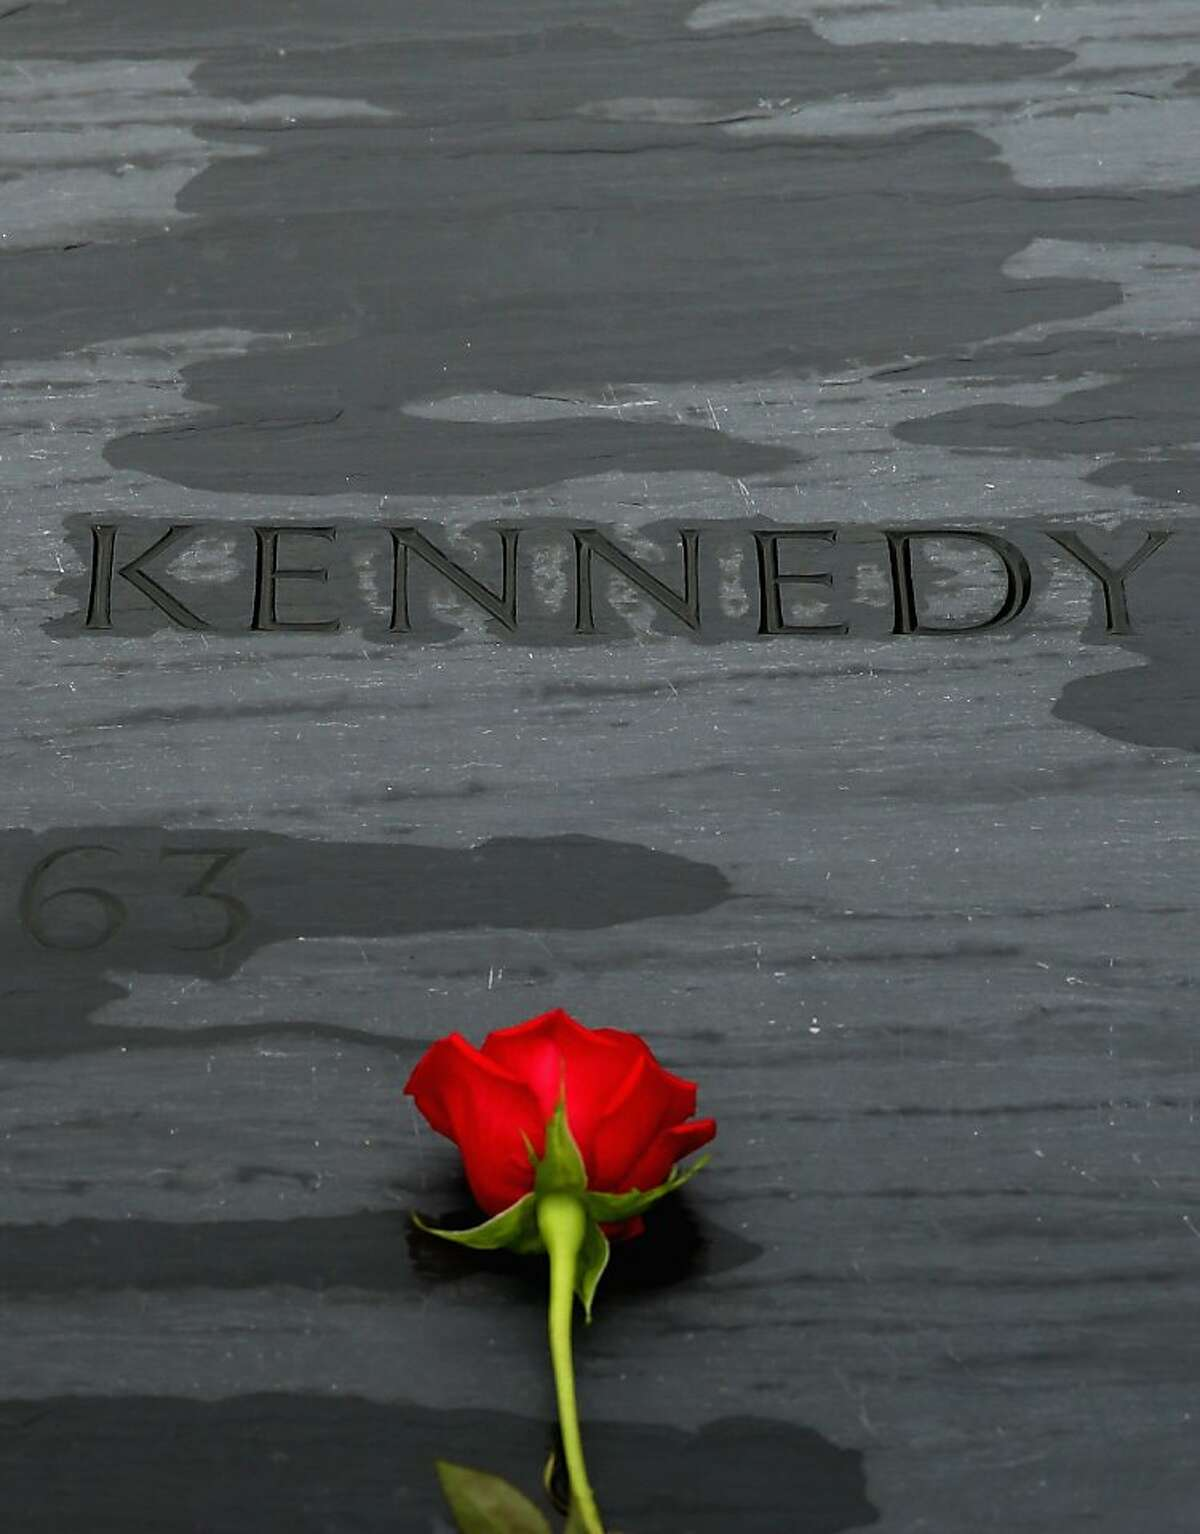 ARLINGTON, VA - NOVEMBER 22: A rose left by family members sits on top of former U.S. President John F. Kennedy's grave marker at Arlington National Cemetery November 22, 2013 in Arlington, Virginia. Remembrance ceremonies will be held arcoss the United States today, the 50th anniversary of the assisination of President Kennedy. (Photo by Chip Somodevilla/Getty Images)